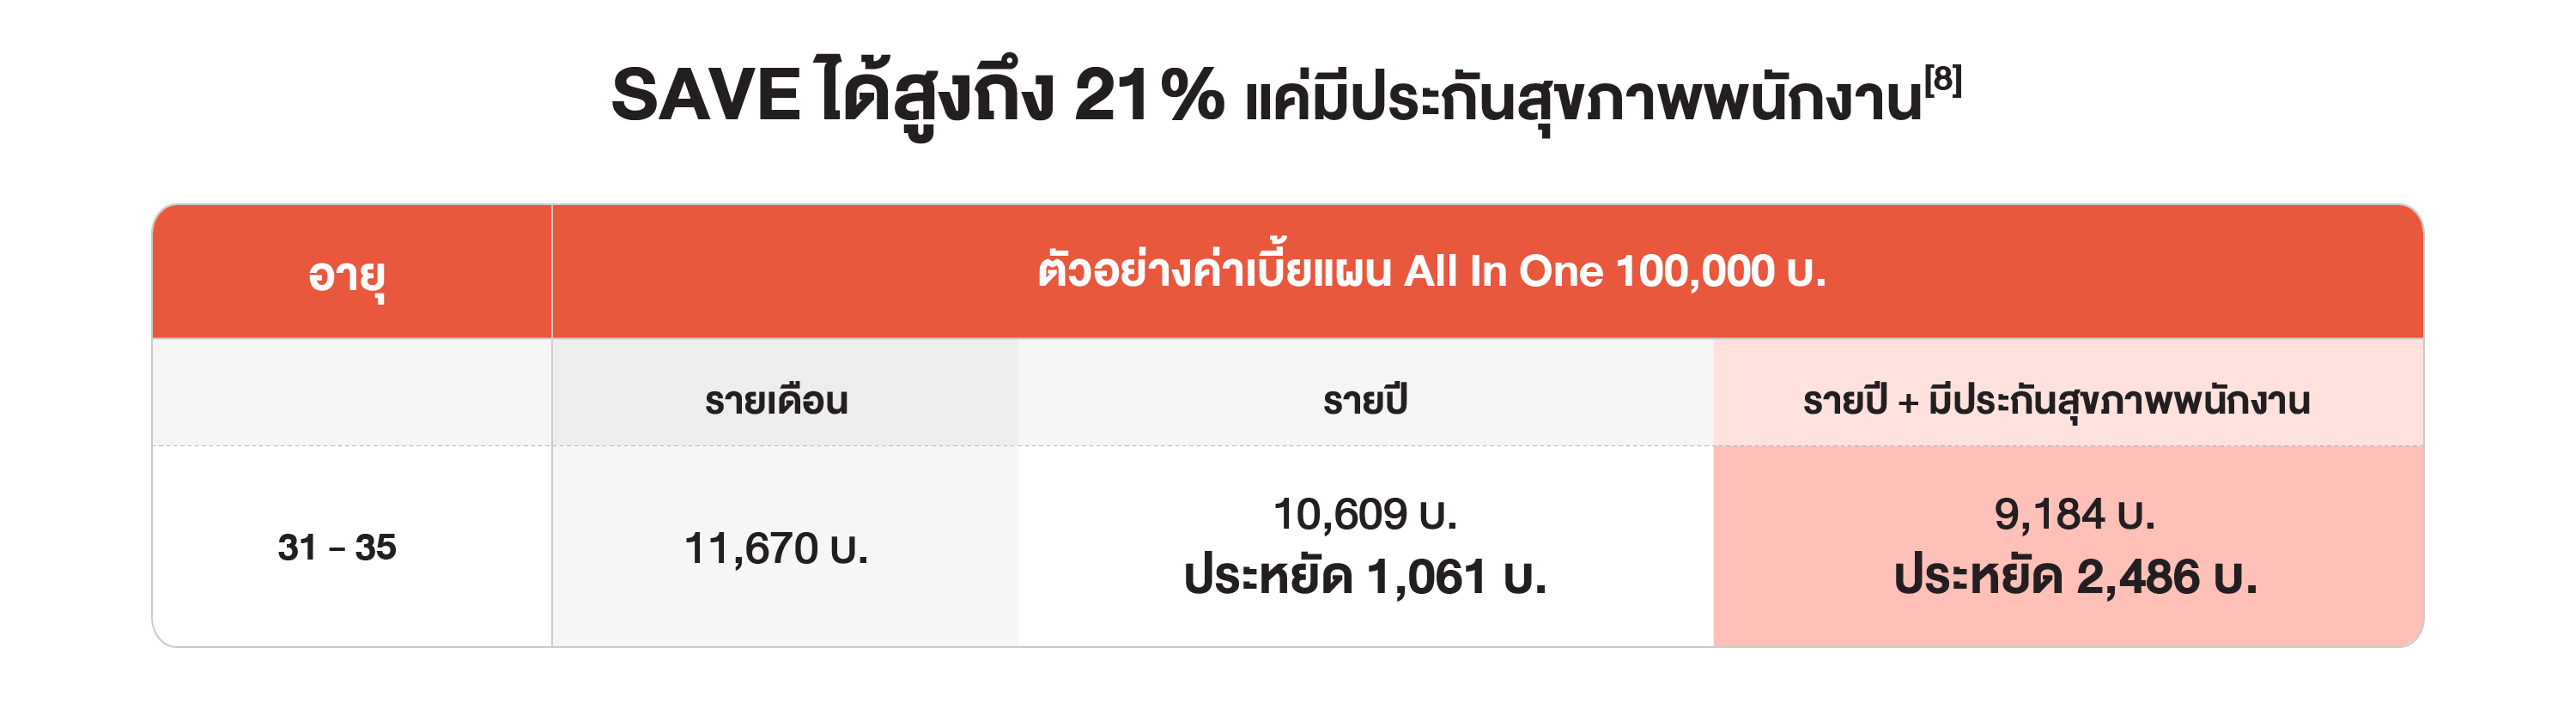 SAVE ได้สูงถึง 21% แค่มีประกันสุขภาพพนักงาน[8]